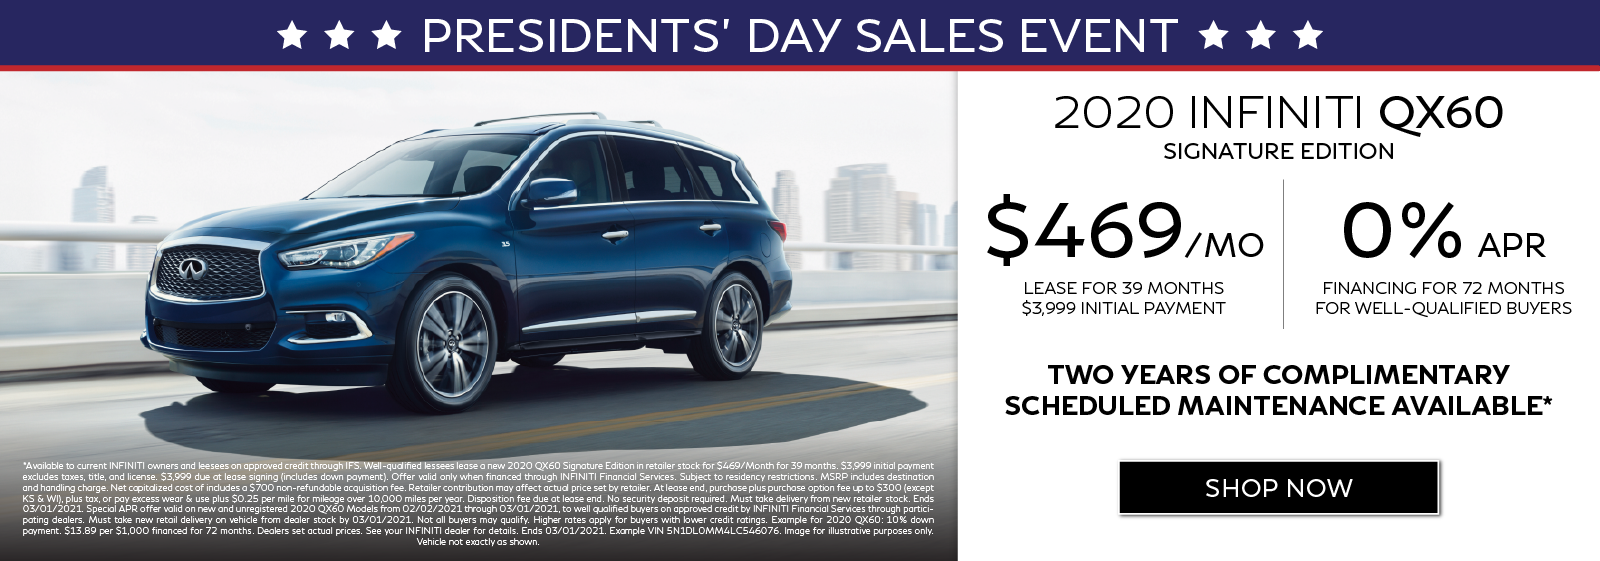 Well-qualified customers can lease a new 2020 QX60 Signature Edition for $469 per month for 39 months OR get 0% APR financing for 72 months. Two years of complimentary scheduled maintenance available.* Click to shop now.